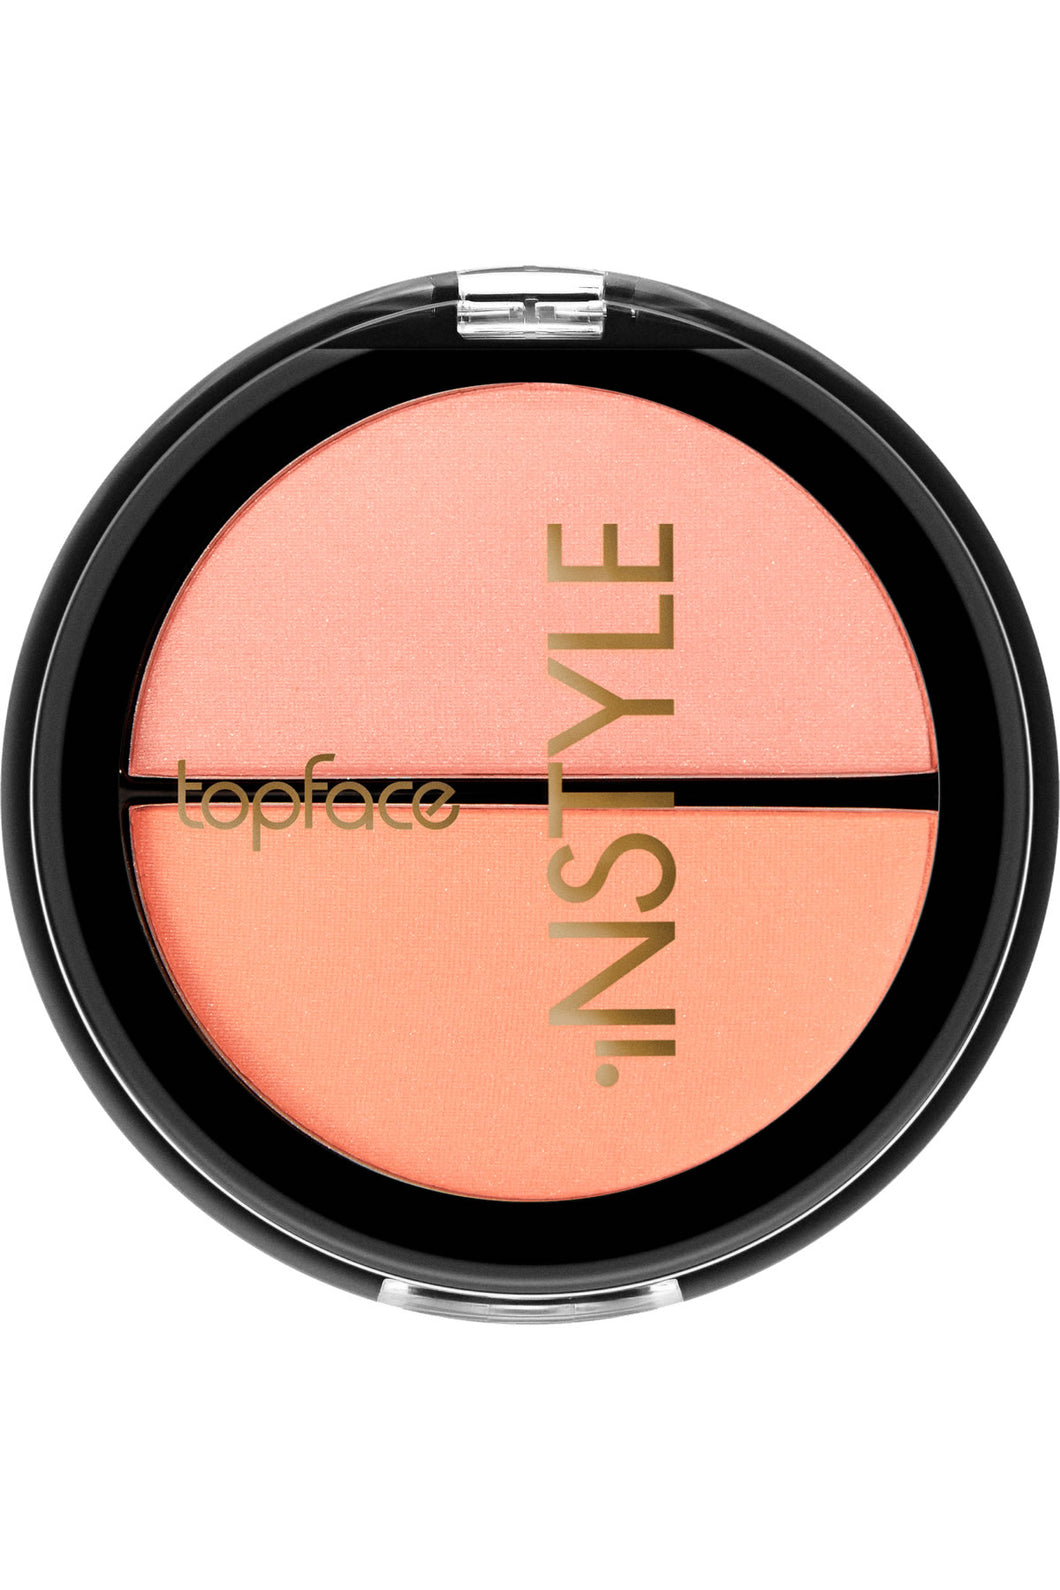 Topface - Instyle Twin Blush On - 002